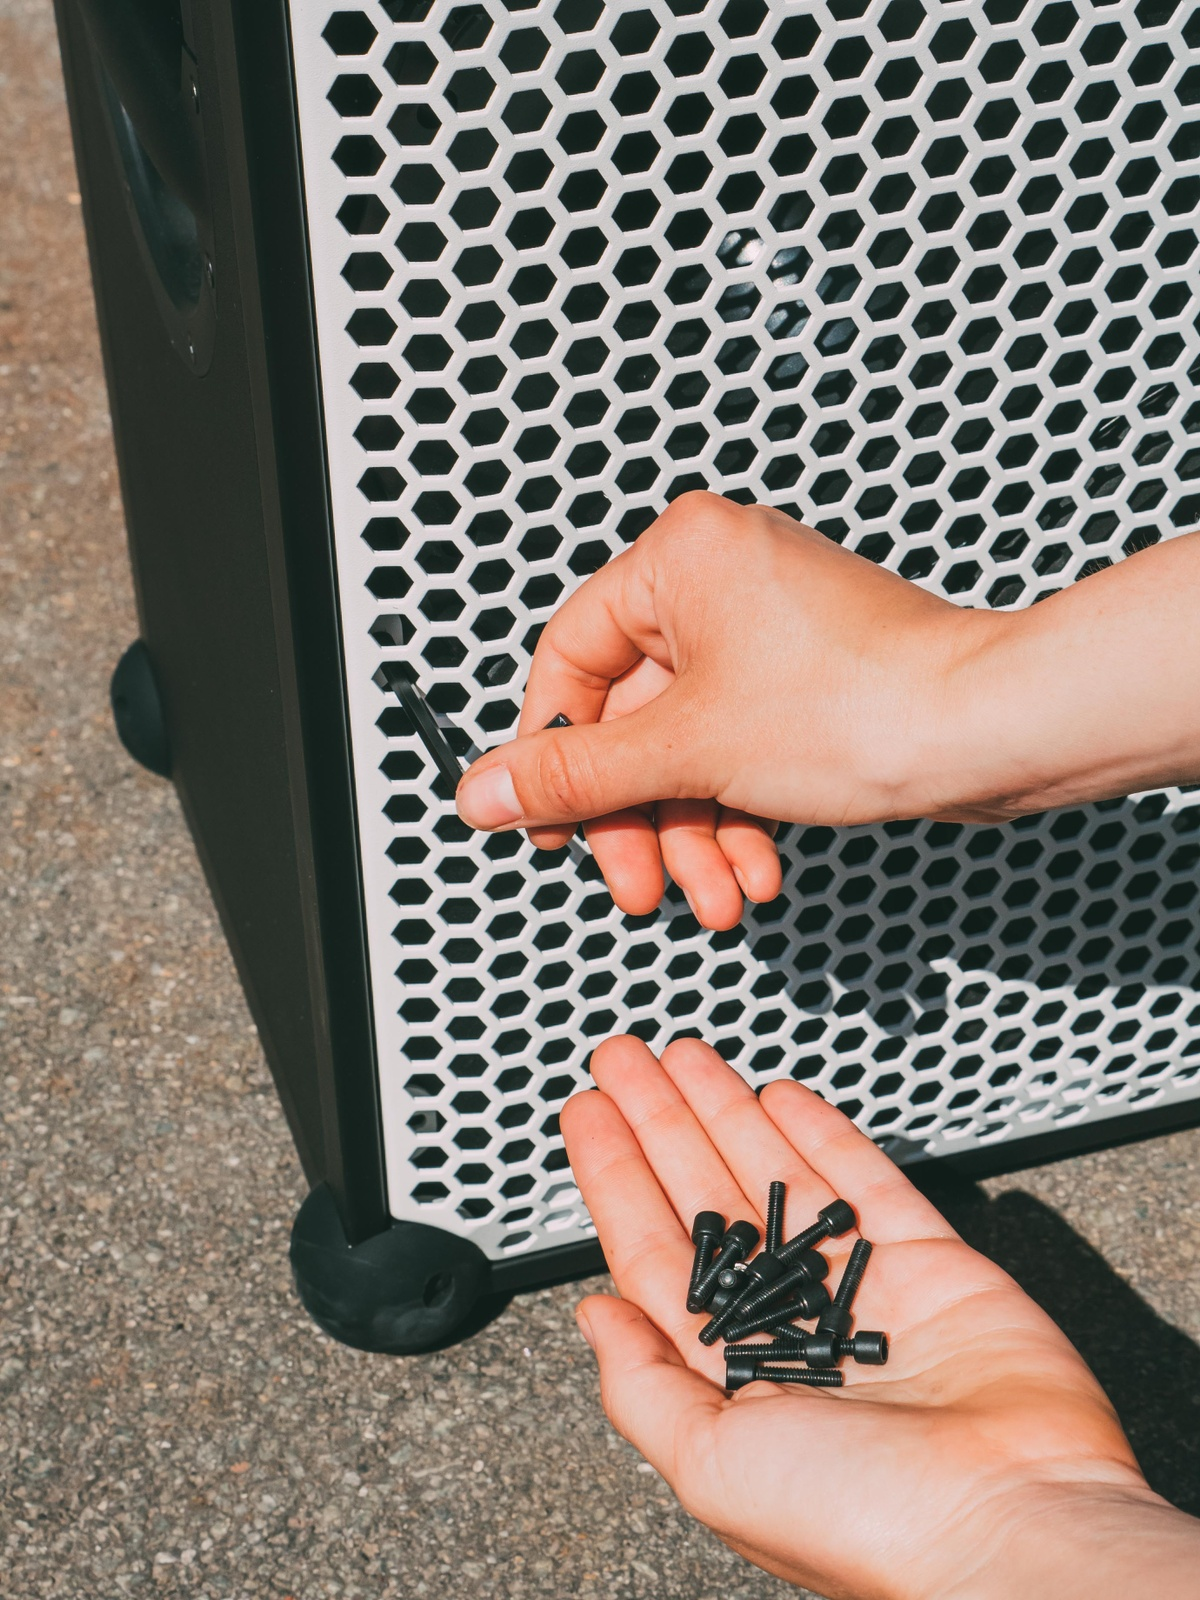 unscrewing the grill off of the SOUNDBOKS Bluetooth Speaker